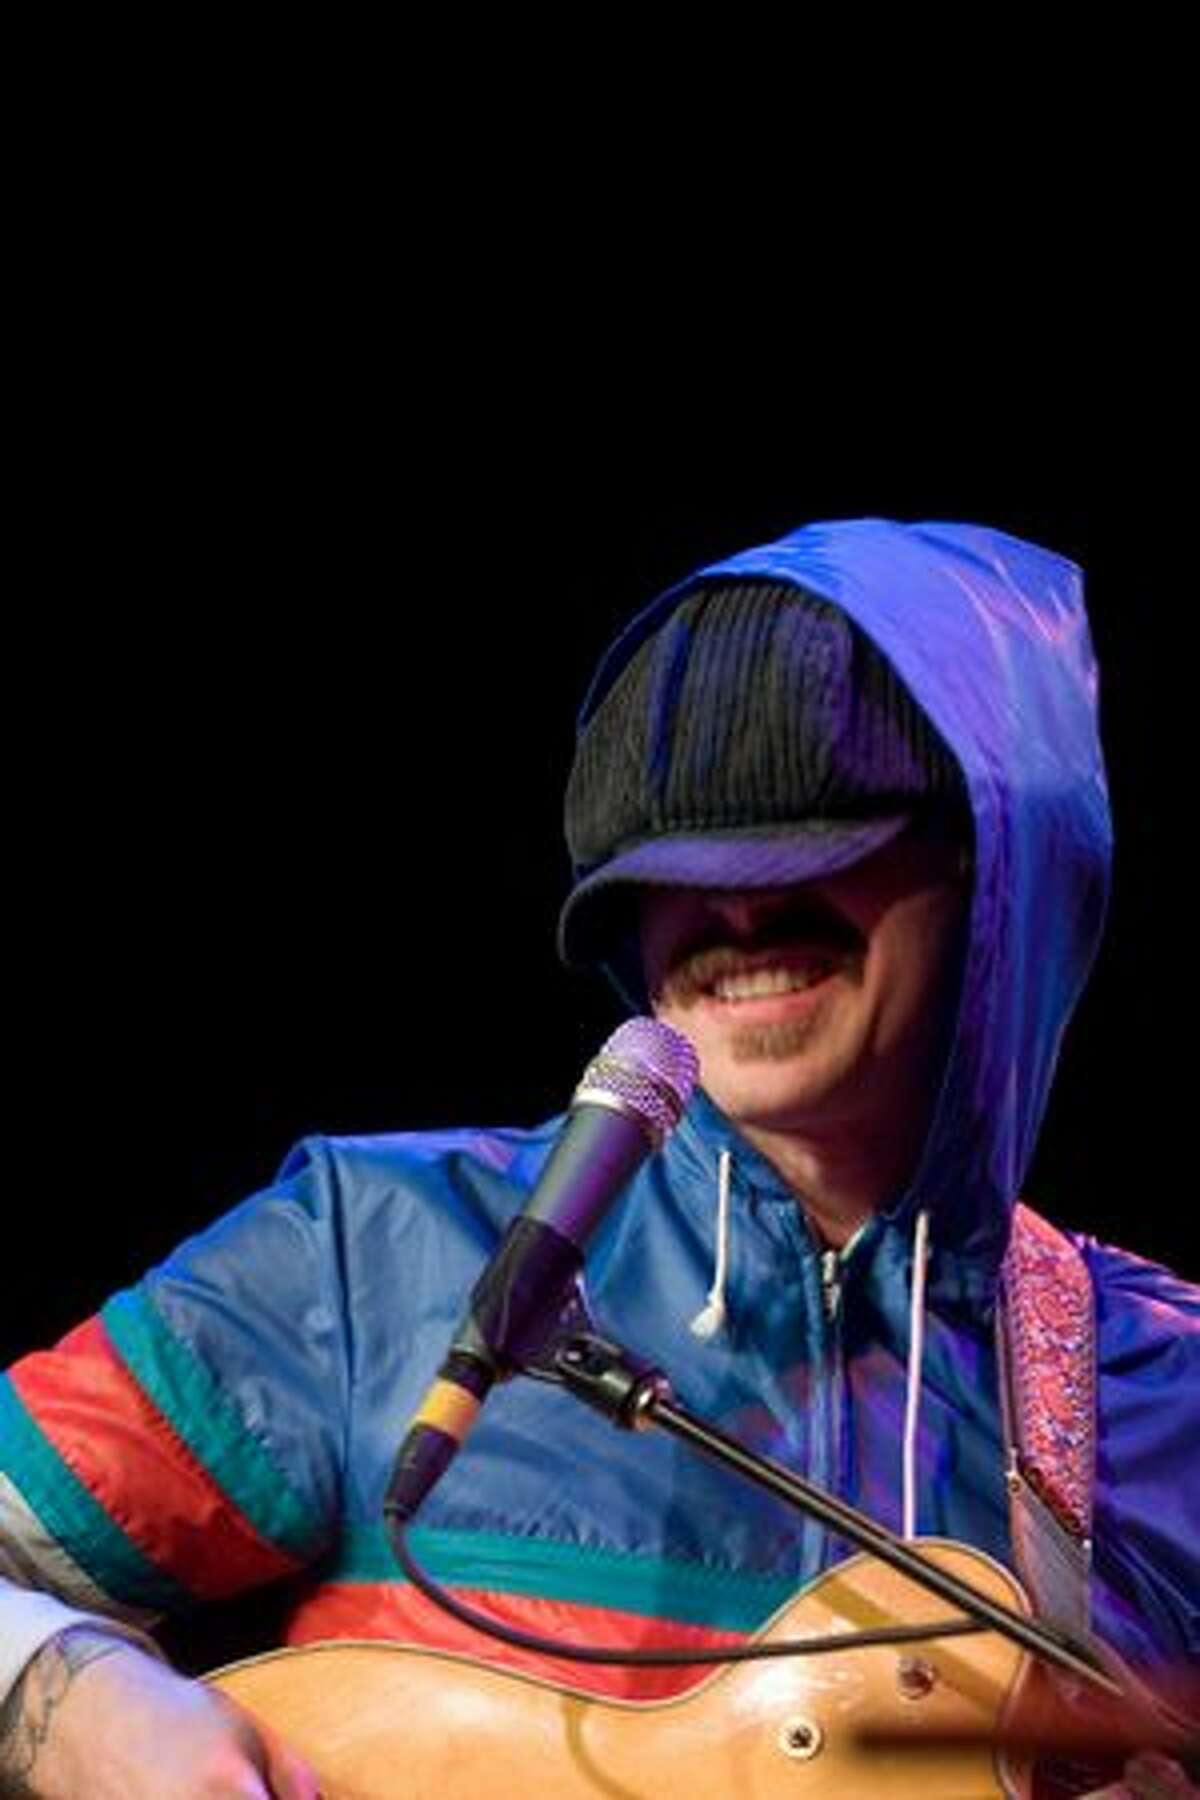 Portugal. The Man plays at Showbox at the Market as part of the Rhapsody Rocks Seattle series on Feb. 16. (Chona Kasinger / seattlepi.com)